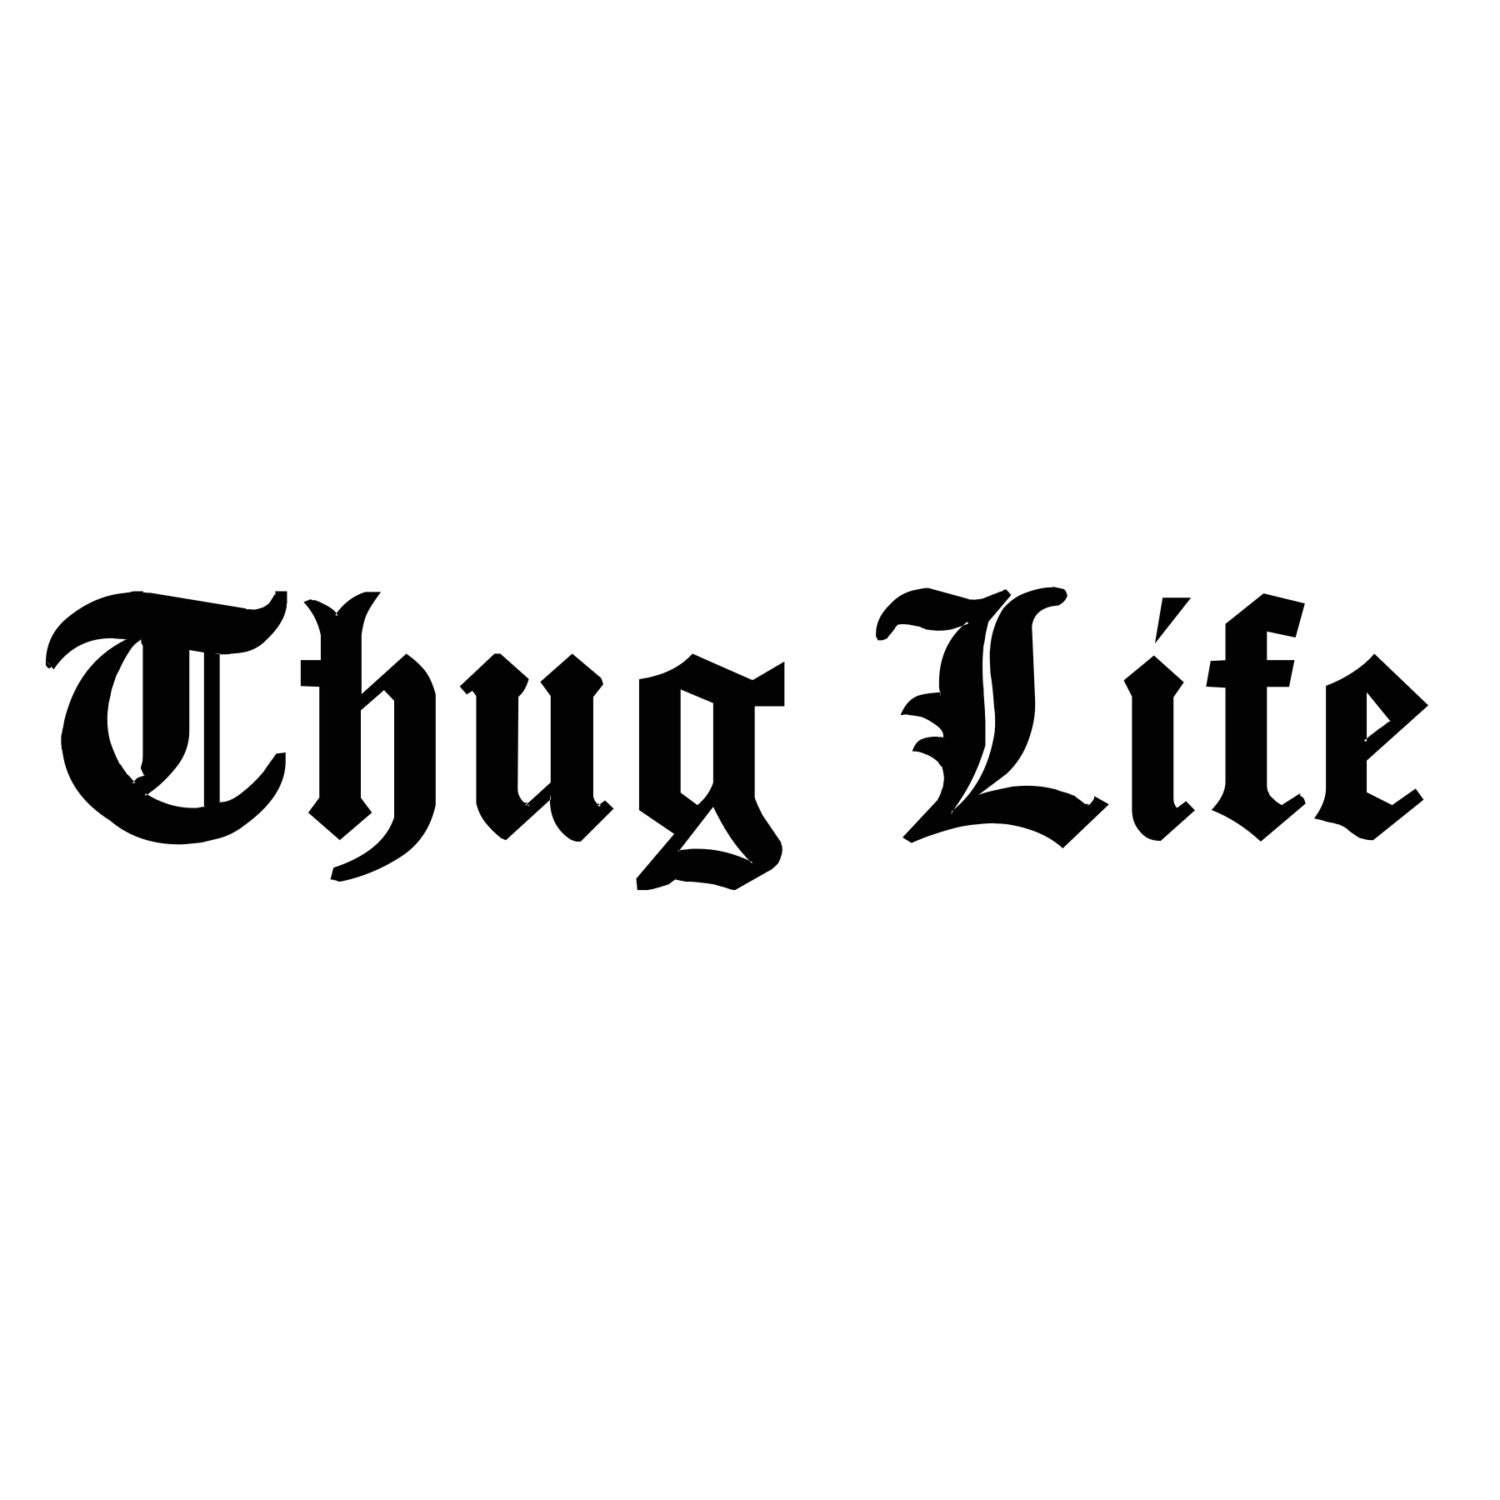 Thug life decal any color any size lowerd car decal jdm tuner internet funny stickers car stickers tuner decal custom